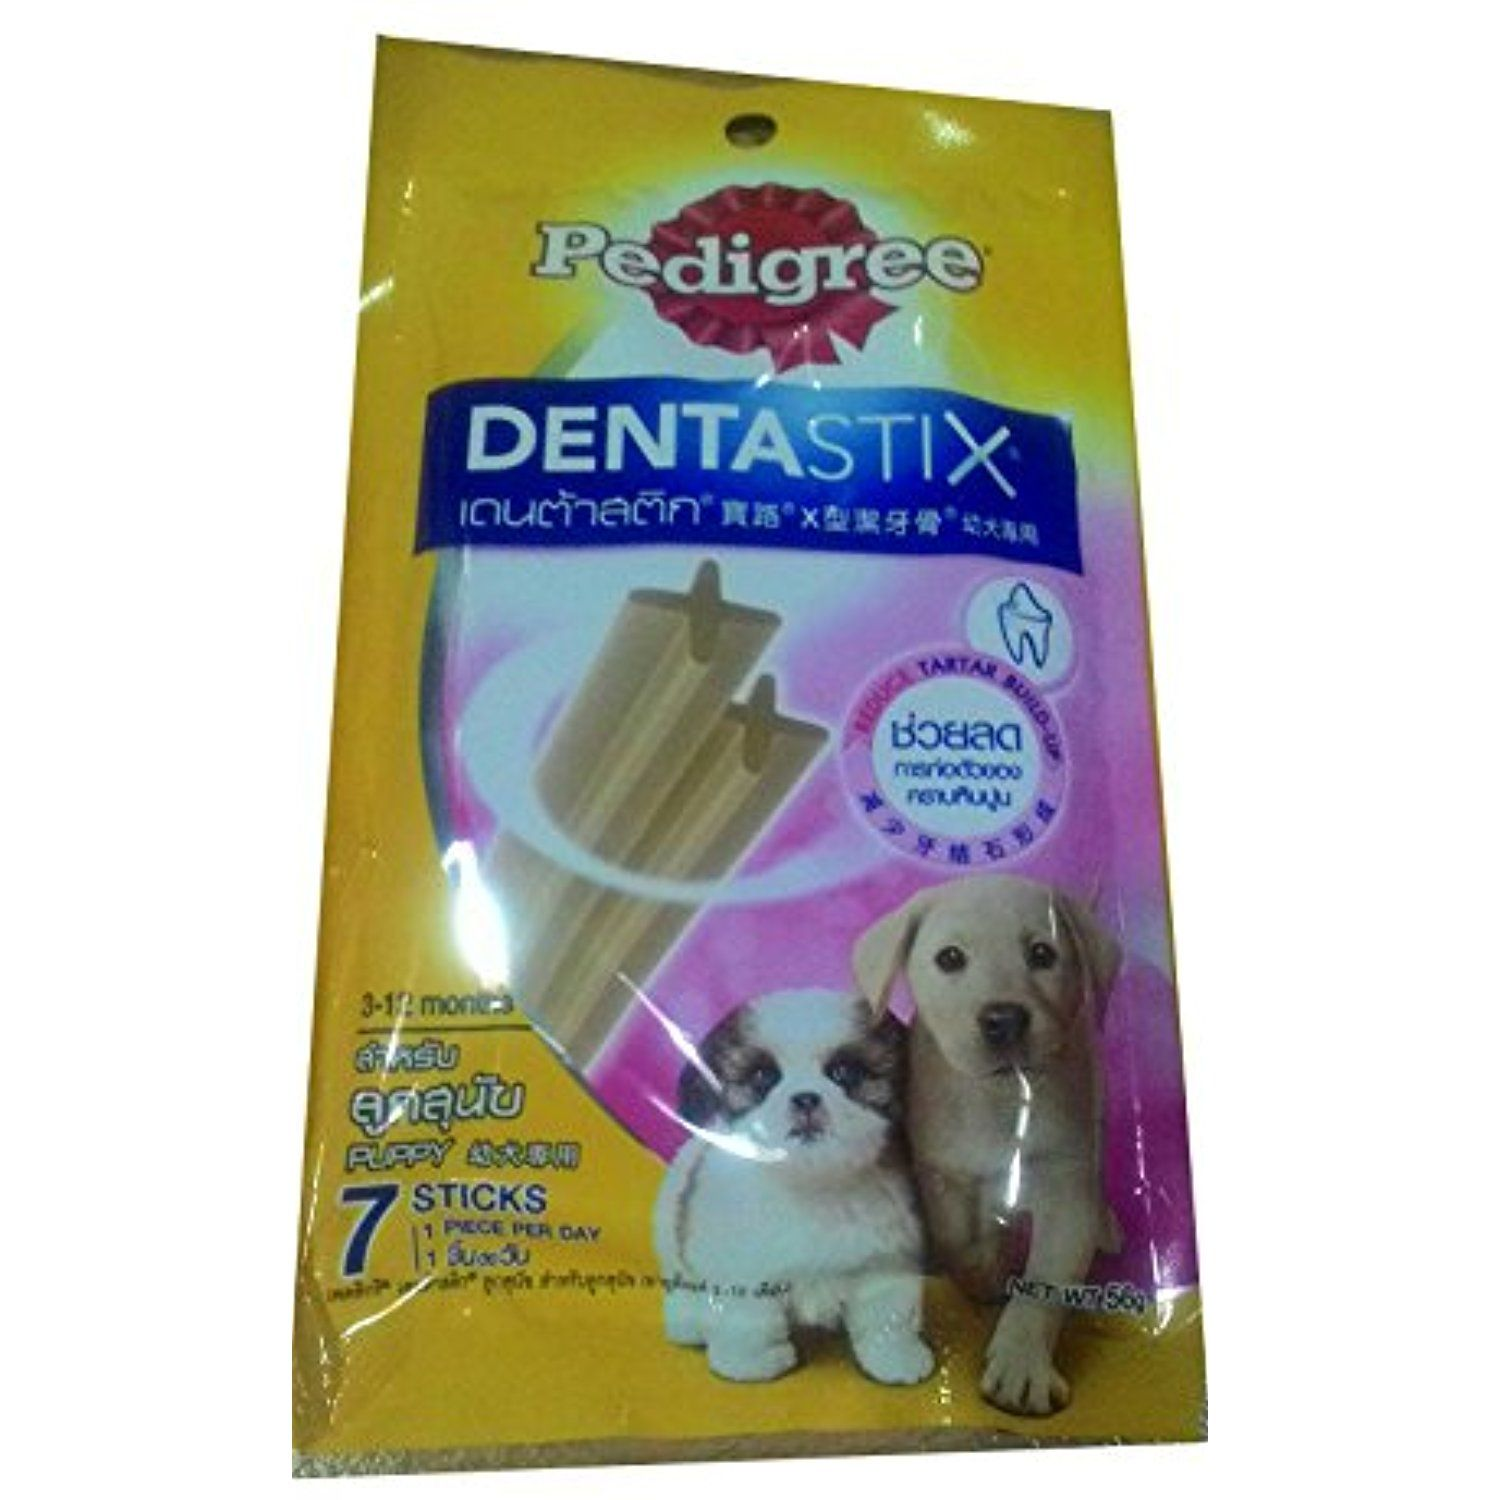 Pedigree Denta Stick Formula Helps Reduce Plaque Accumulation For